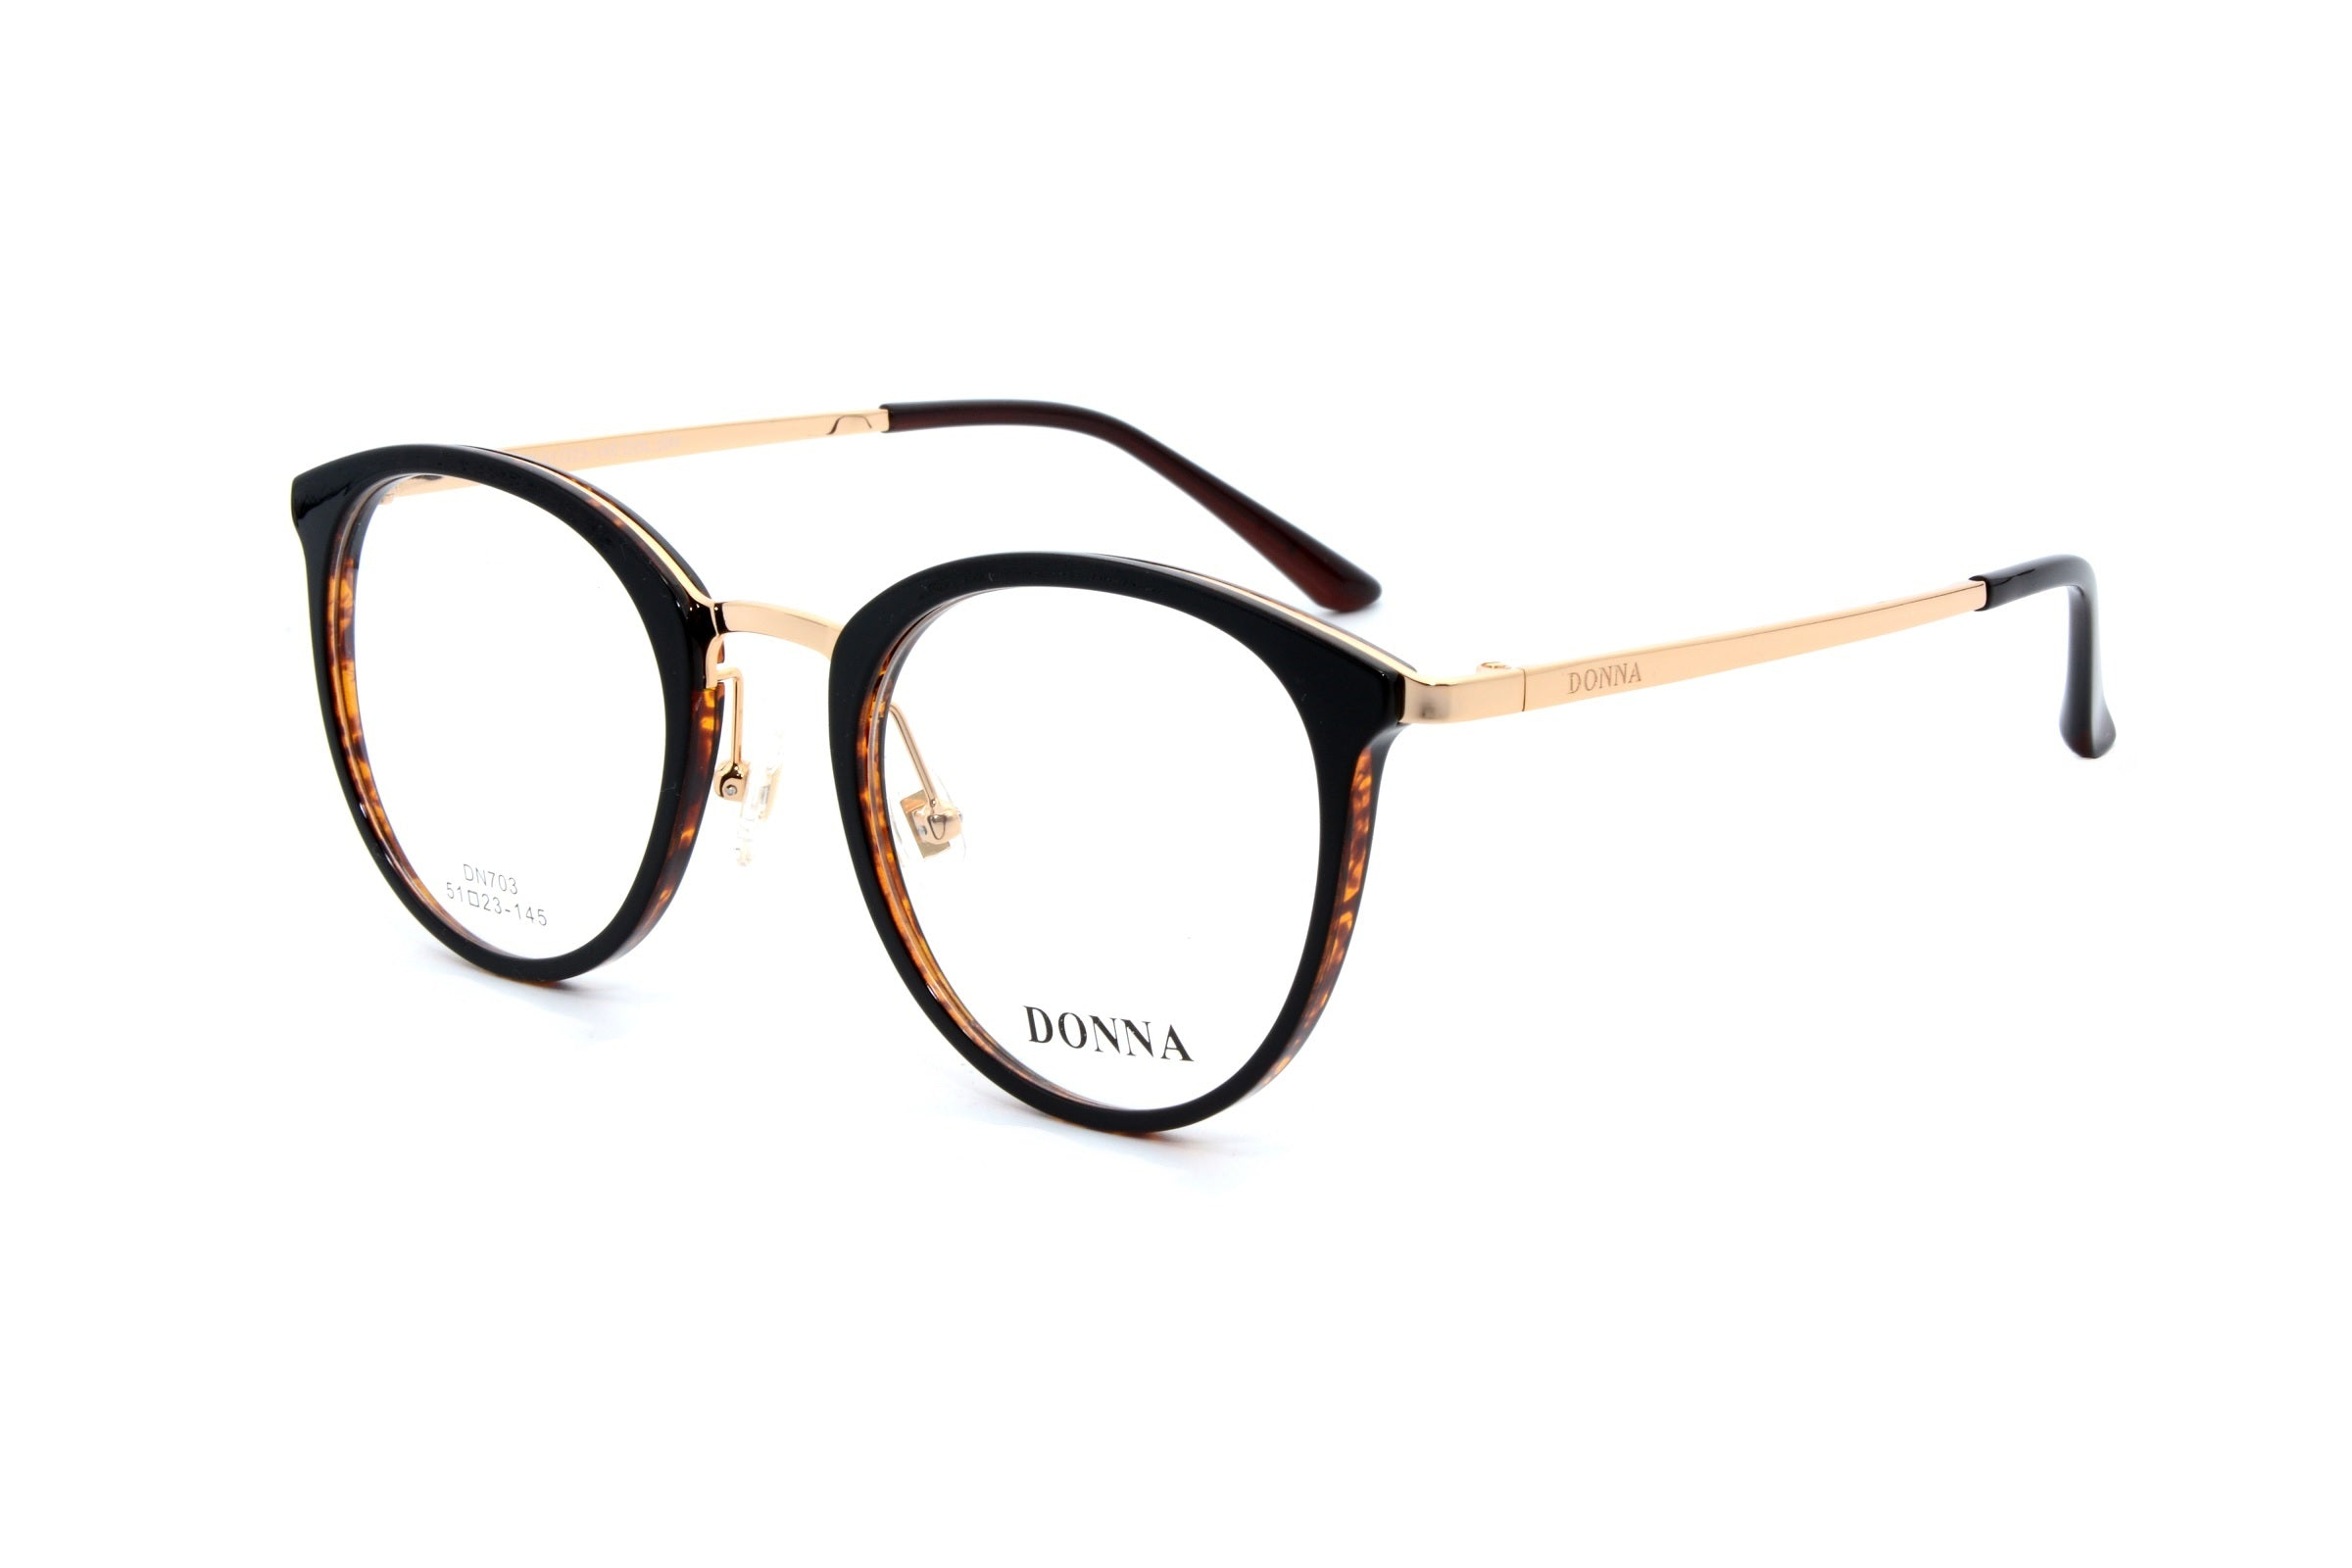 Donna eyewear 703, C004 - Optics Trading